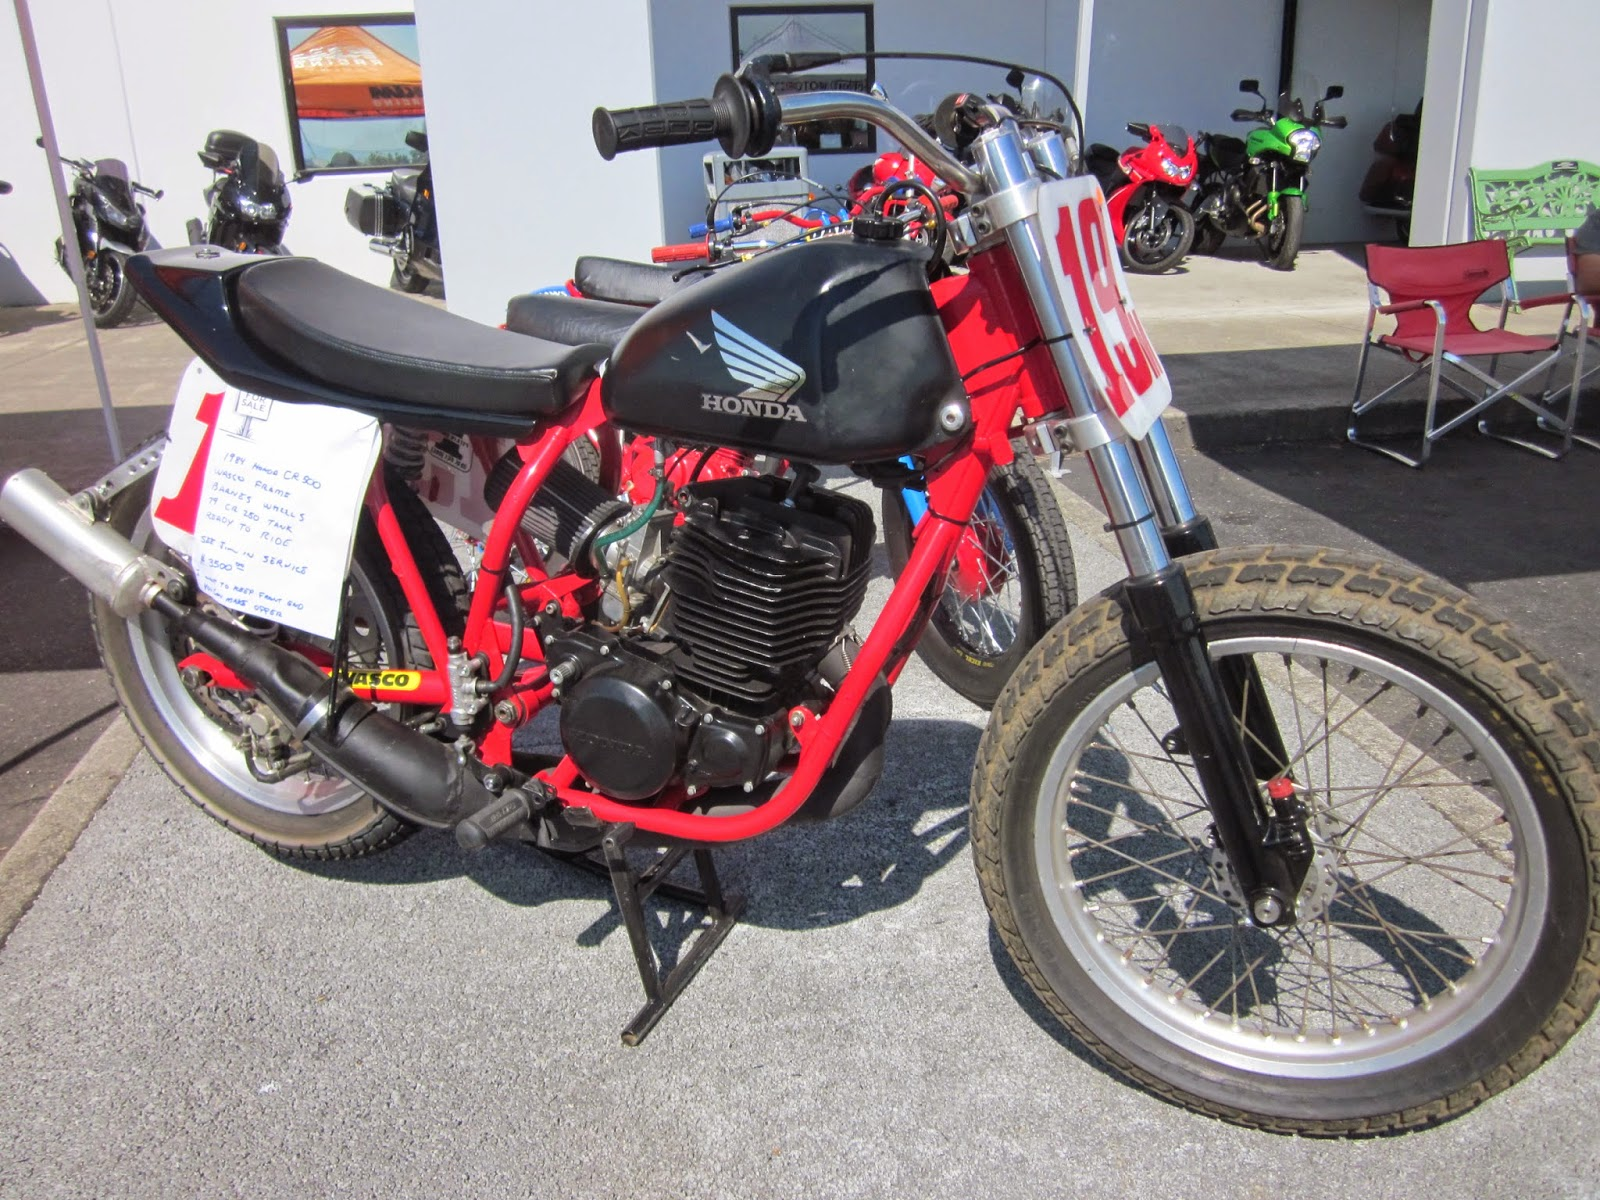 1984 Honda CR250 Flat Tracker In Wasco Frame On Display At The 2014 VJMC Hinshaws Motorcycle Show N Shine Auburn Wa